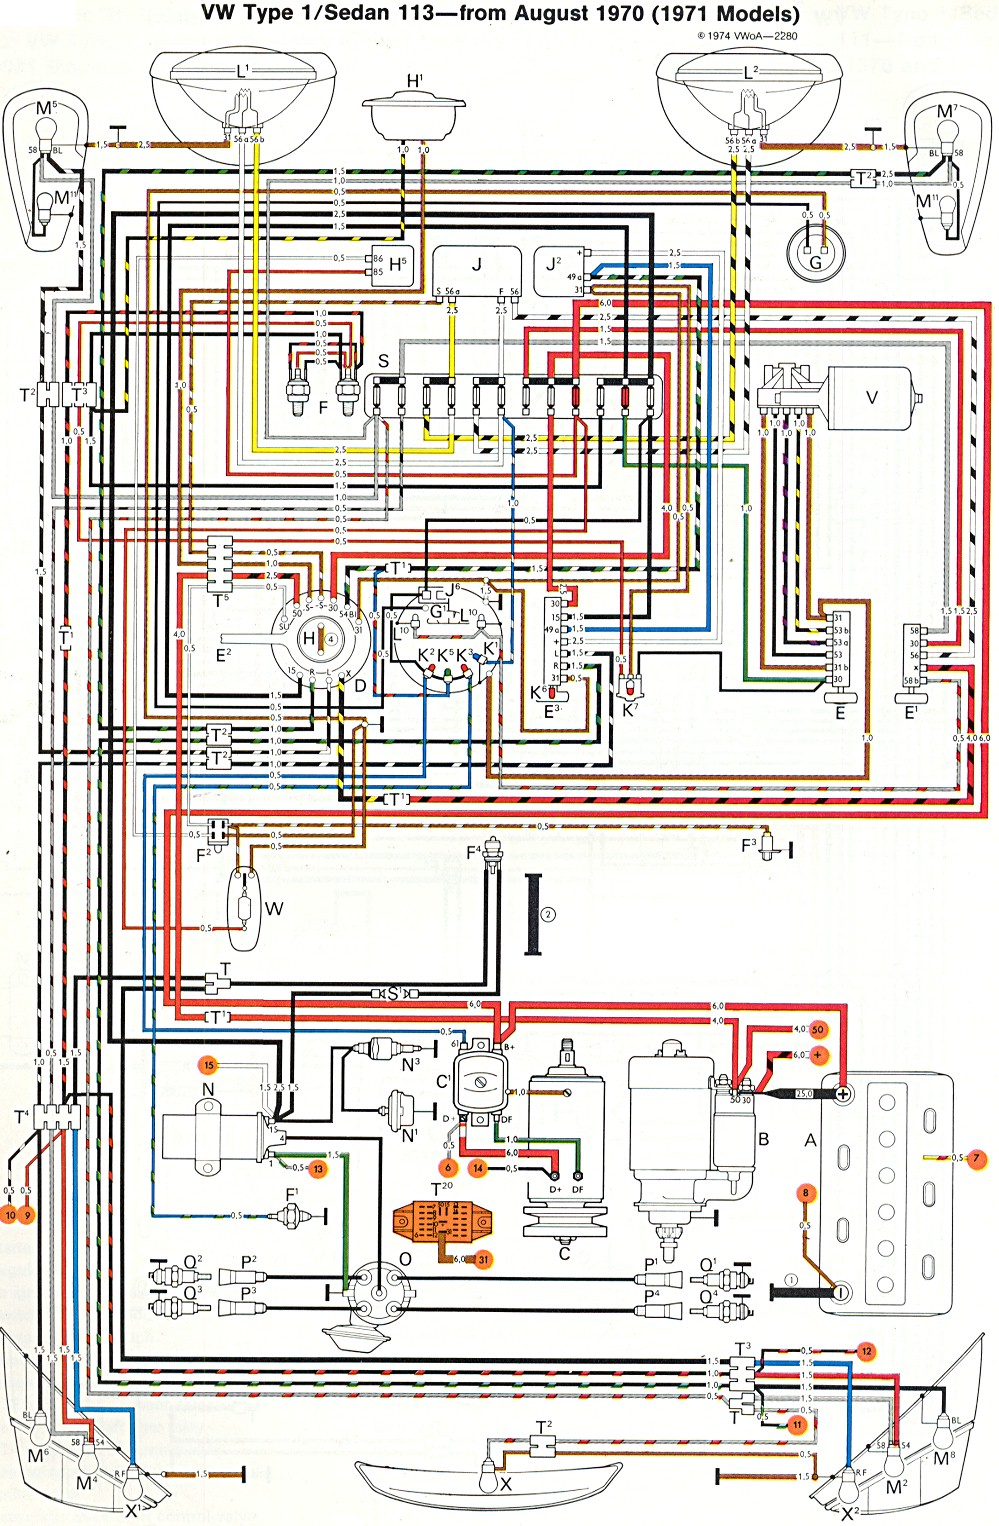 1973 vw super beetle engine wiring diagram - wiring diagram change-teta -  change-teta.disnar.it  disnar.it